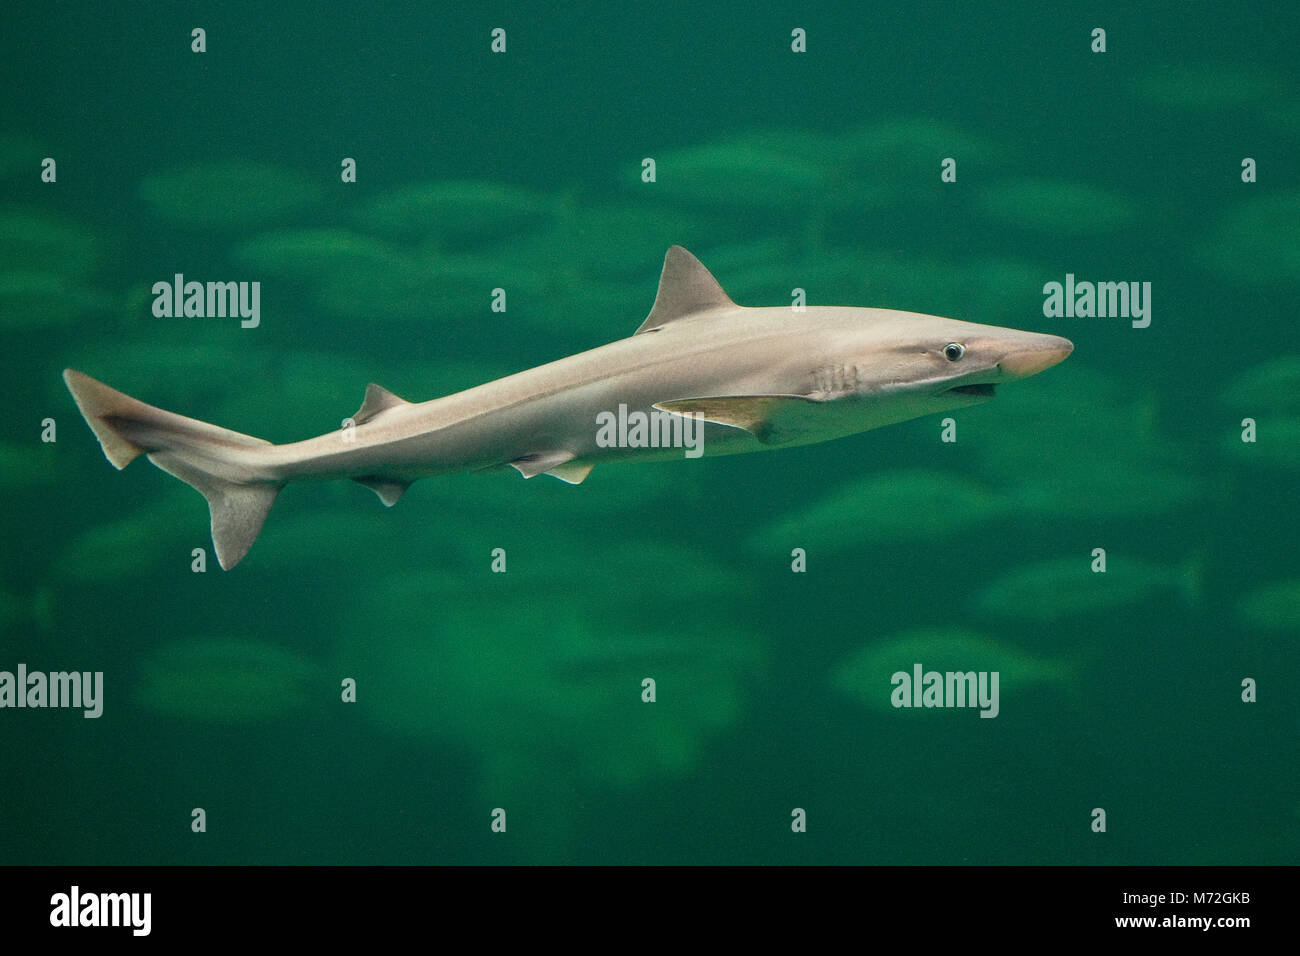 Tope Shark Imágenes De Stock & Tope Shark Fotos De Stock - Alamy